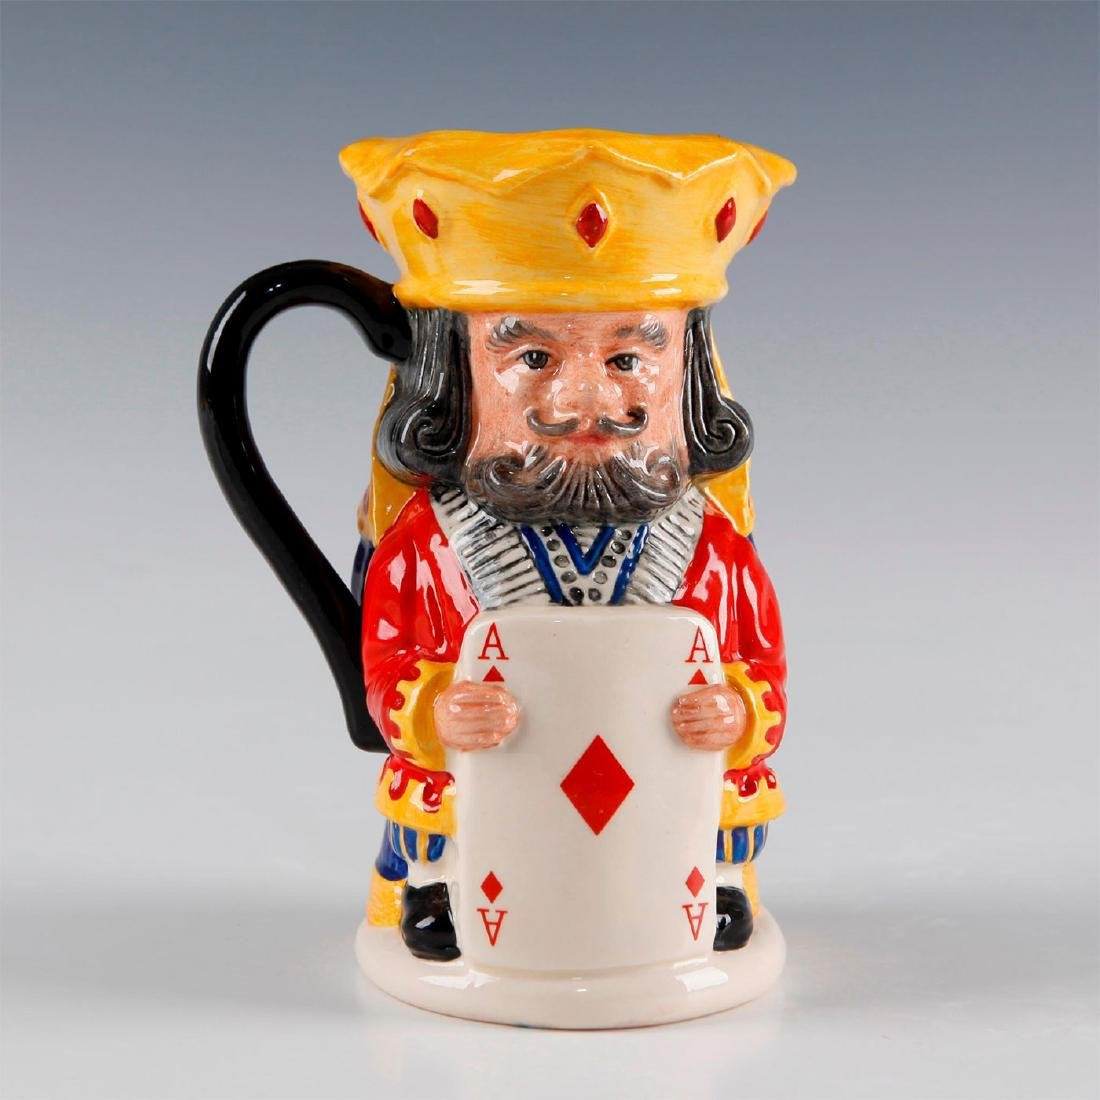 ROYAL DOULTON TOBY JUG KING AND QUEEN OF DIAMONDS D6969